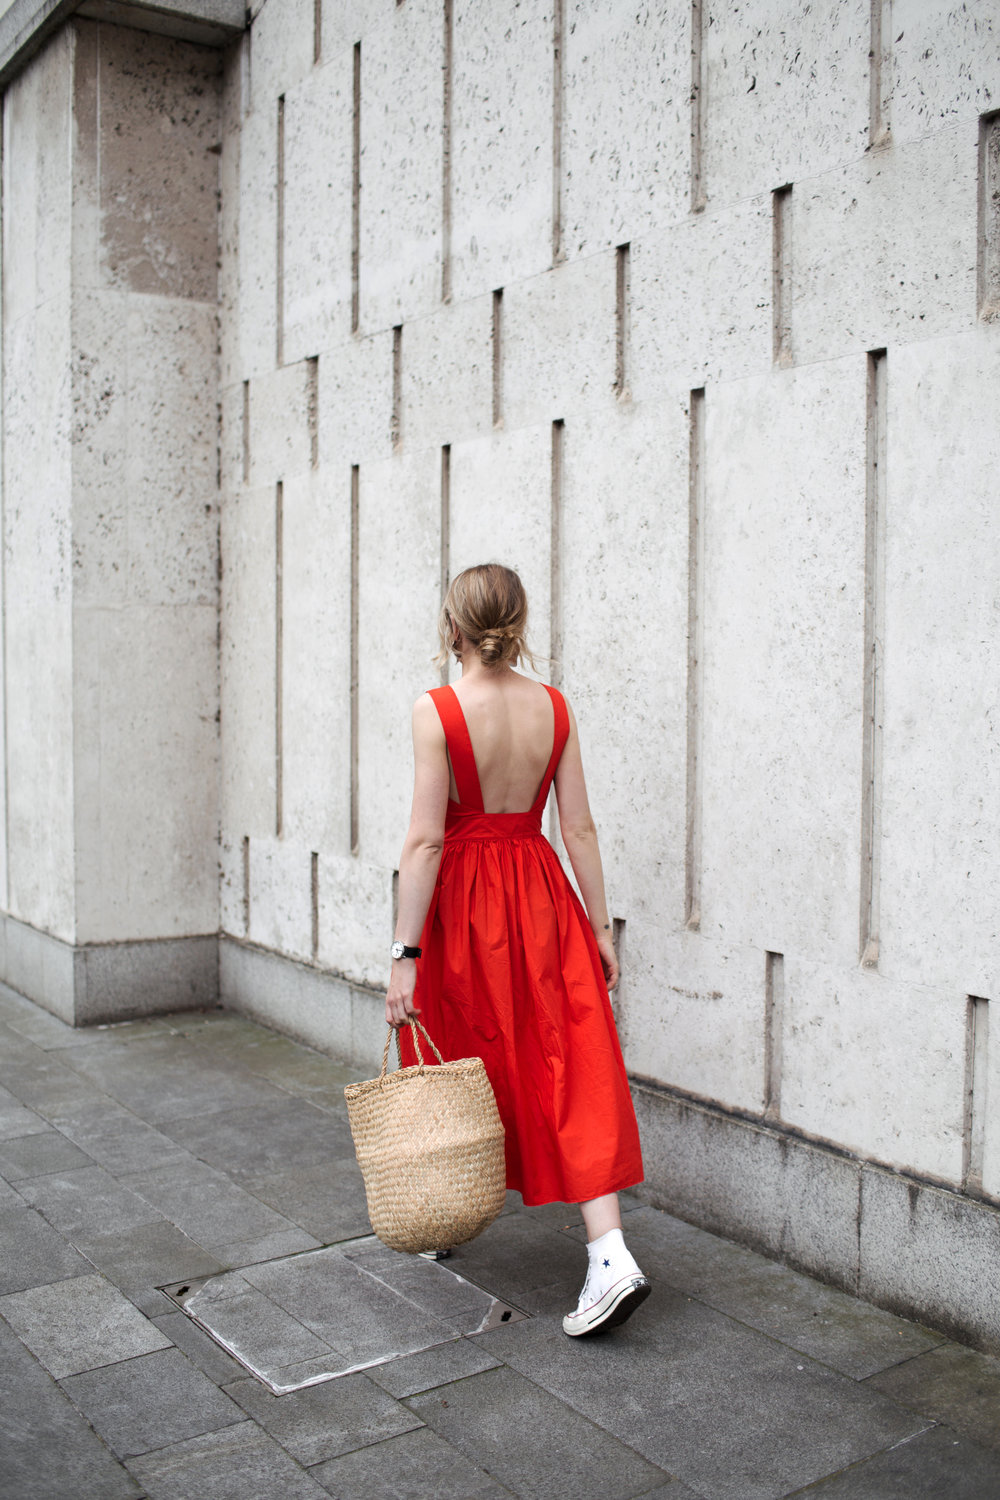 COS Red Dress 3 (1 of 1).jpg